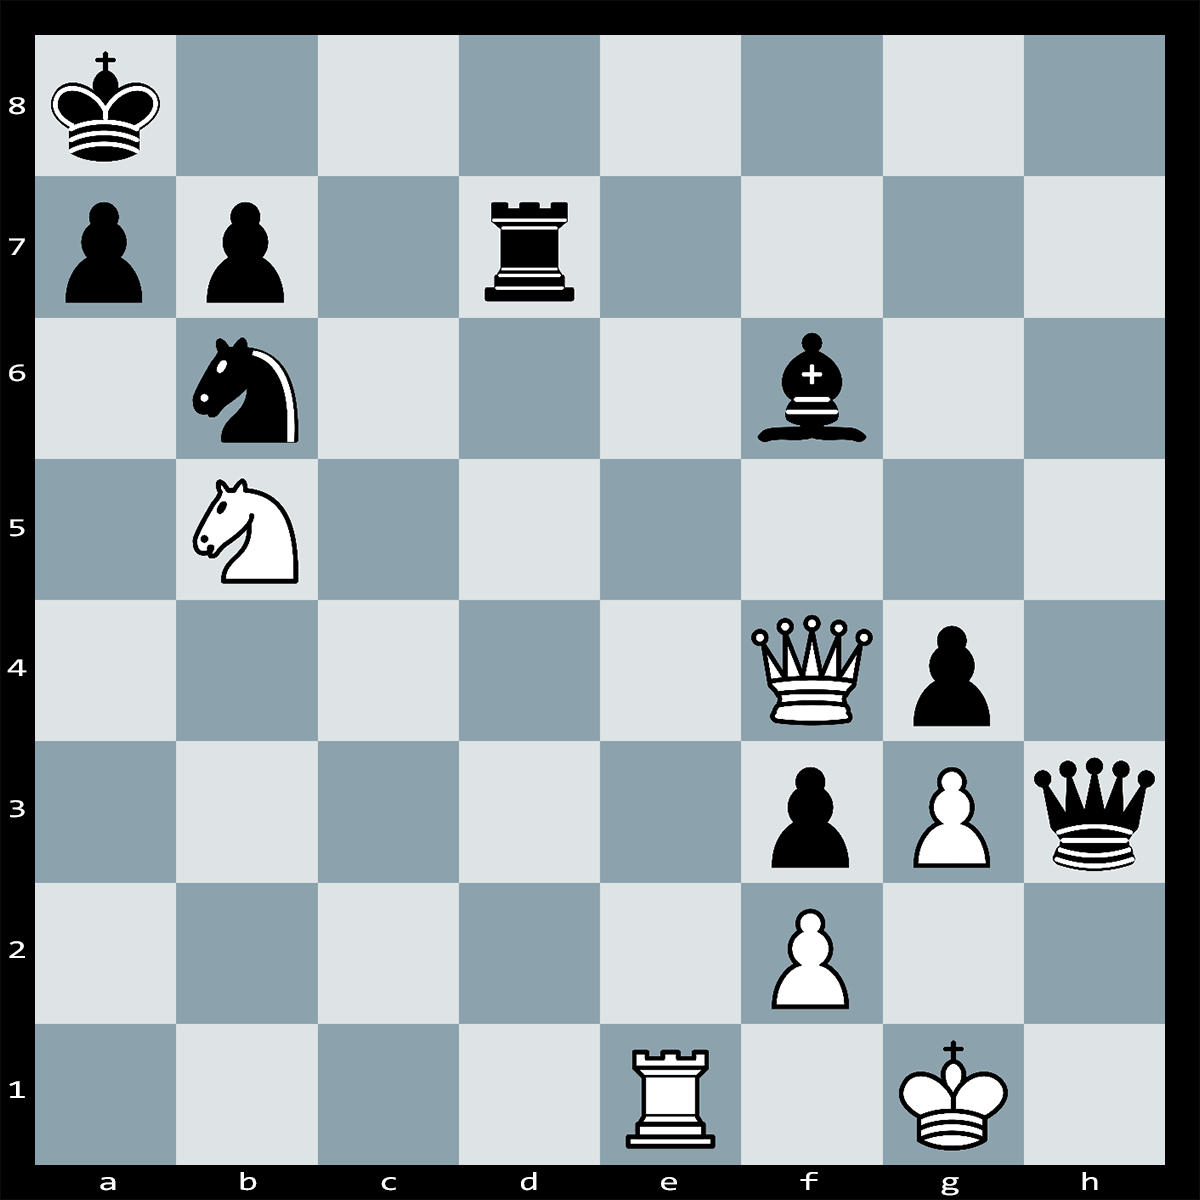 Chess Puzzle #336 | Black has more pieces, but it is white's turn to play. Can you spot the move that wins the game?